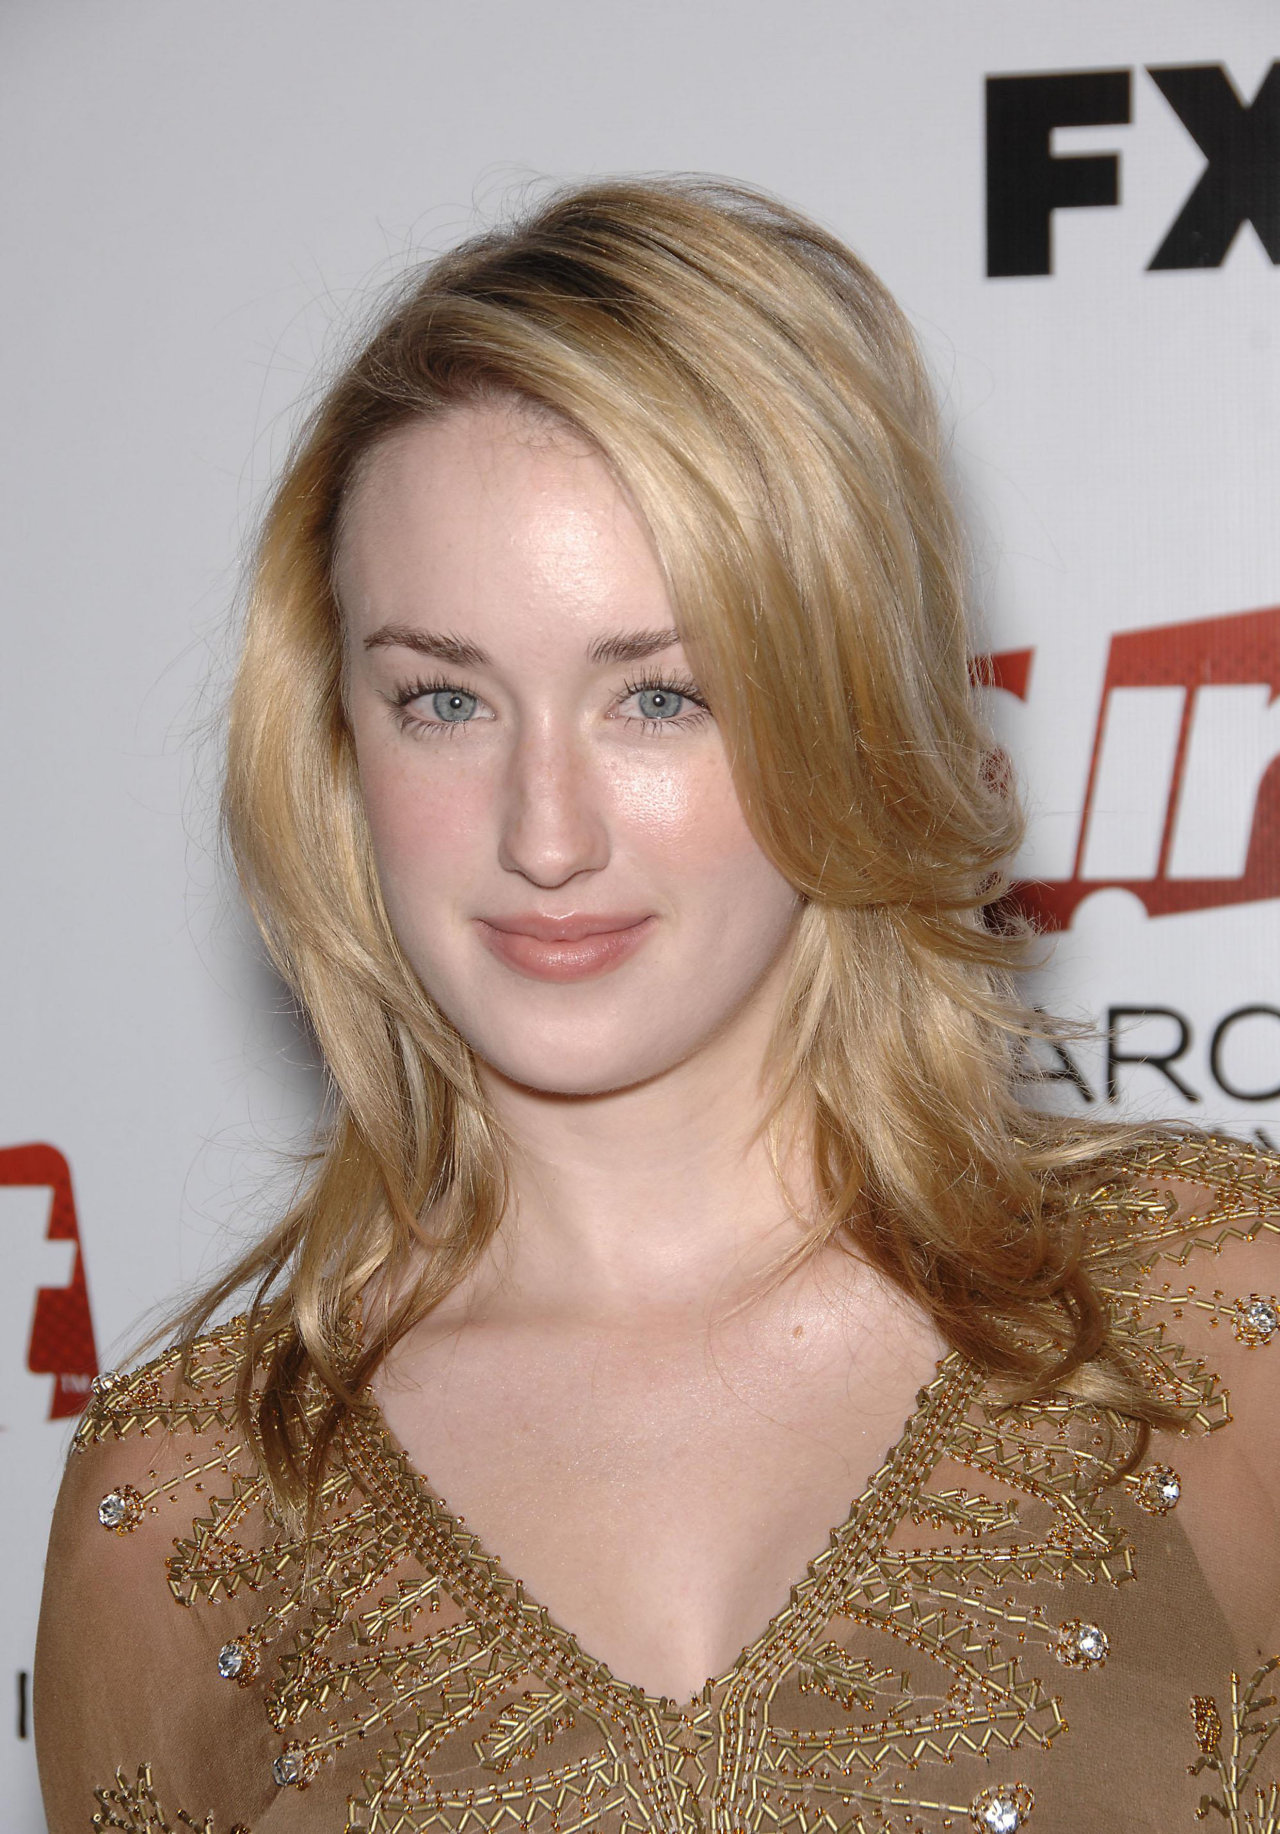 ashley johnson through the valley скачать